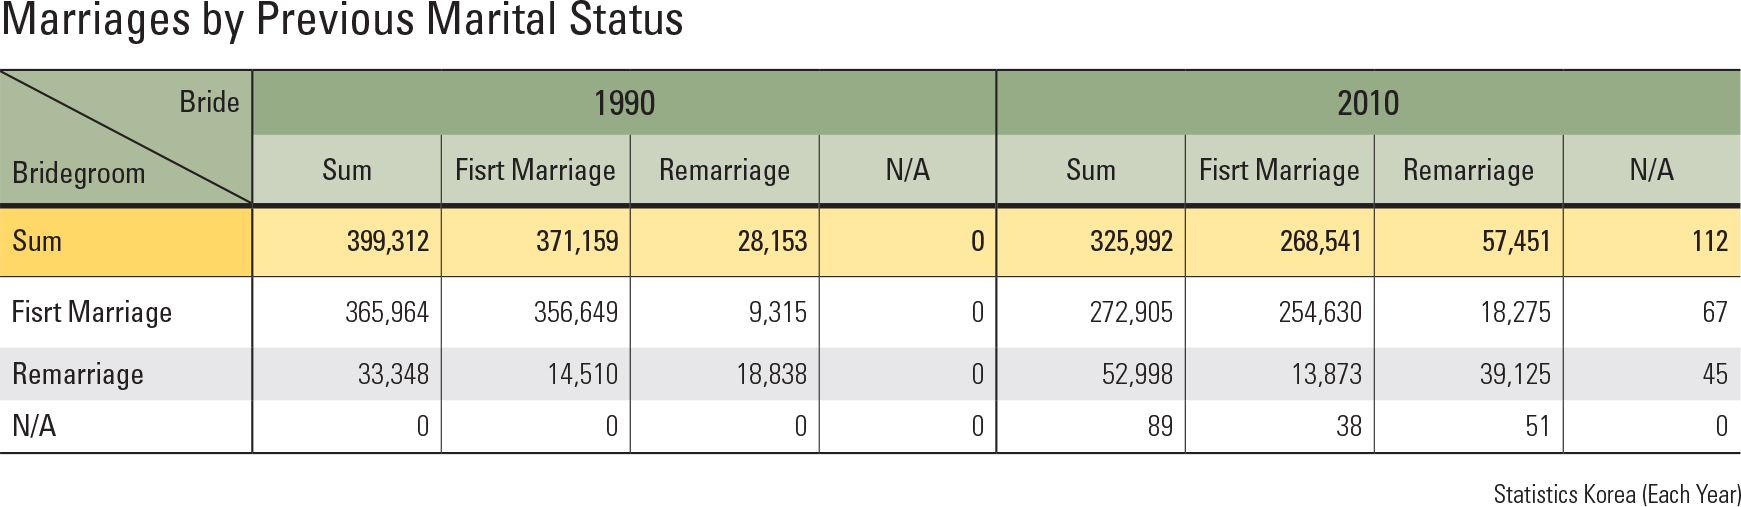 Marriages by Previous Marital Status